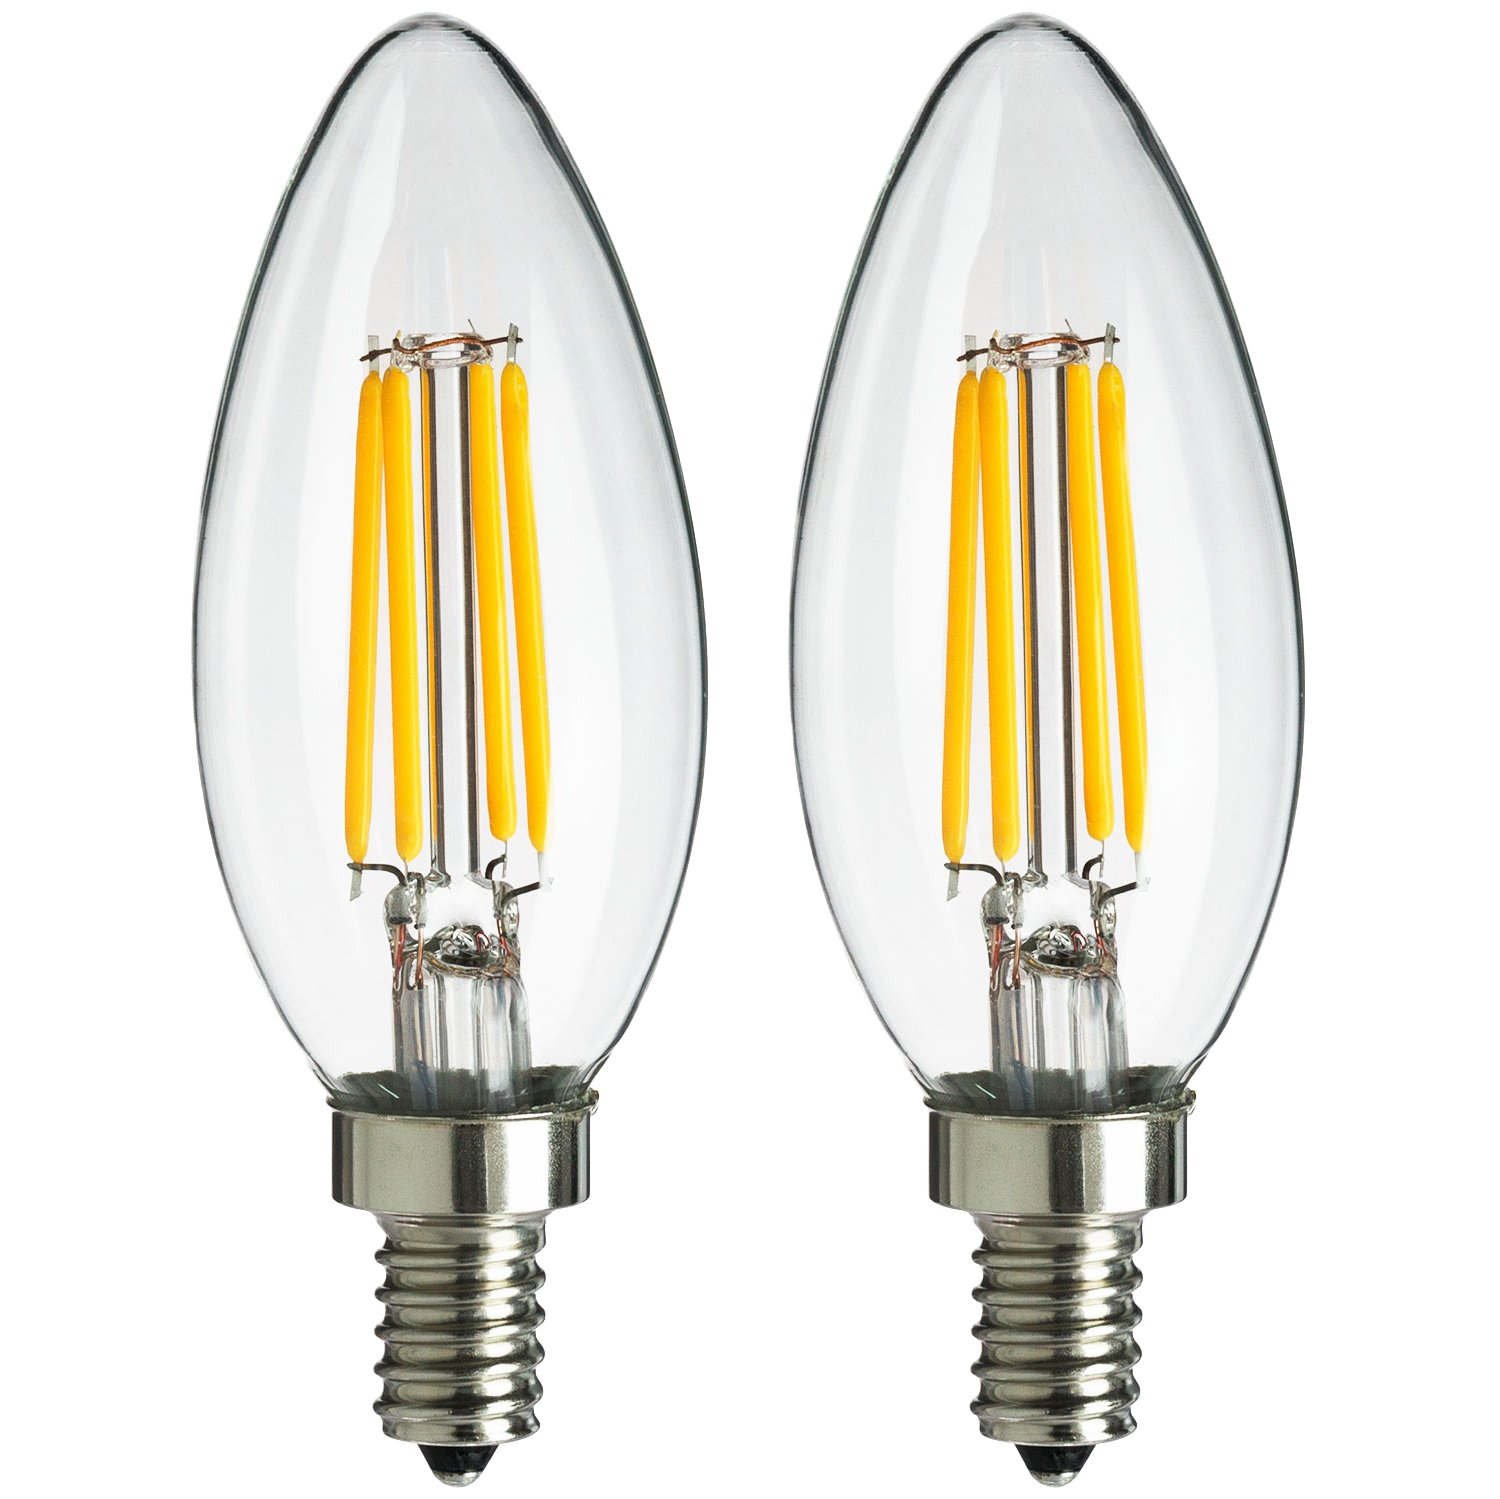 sunlite 4w equivalent led filament antique style chandelier light bulb with candelabra base dimmable 2pack